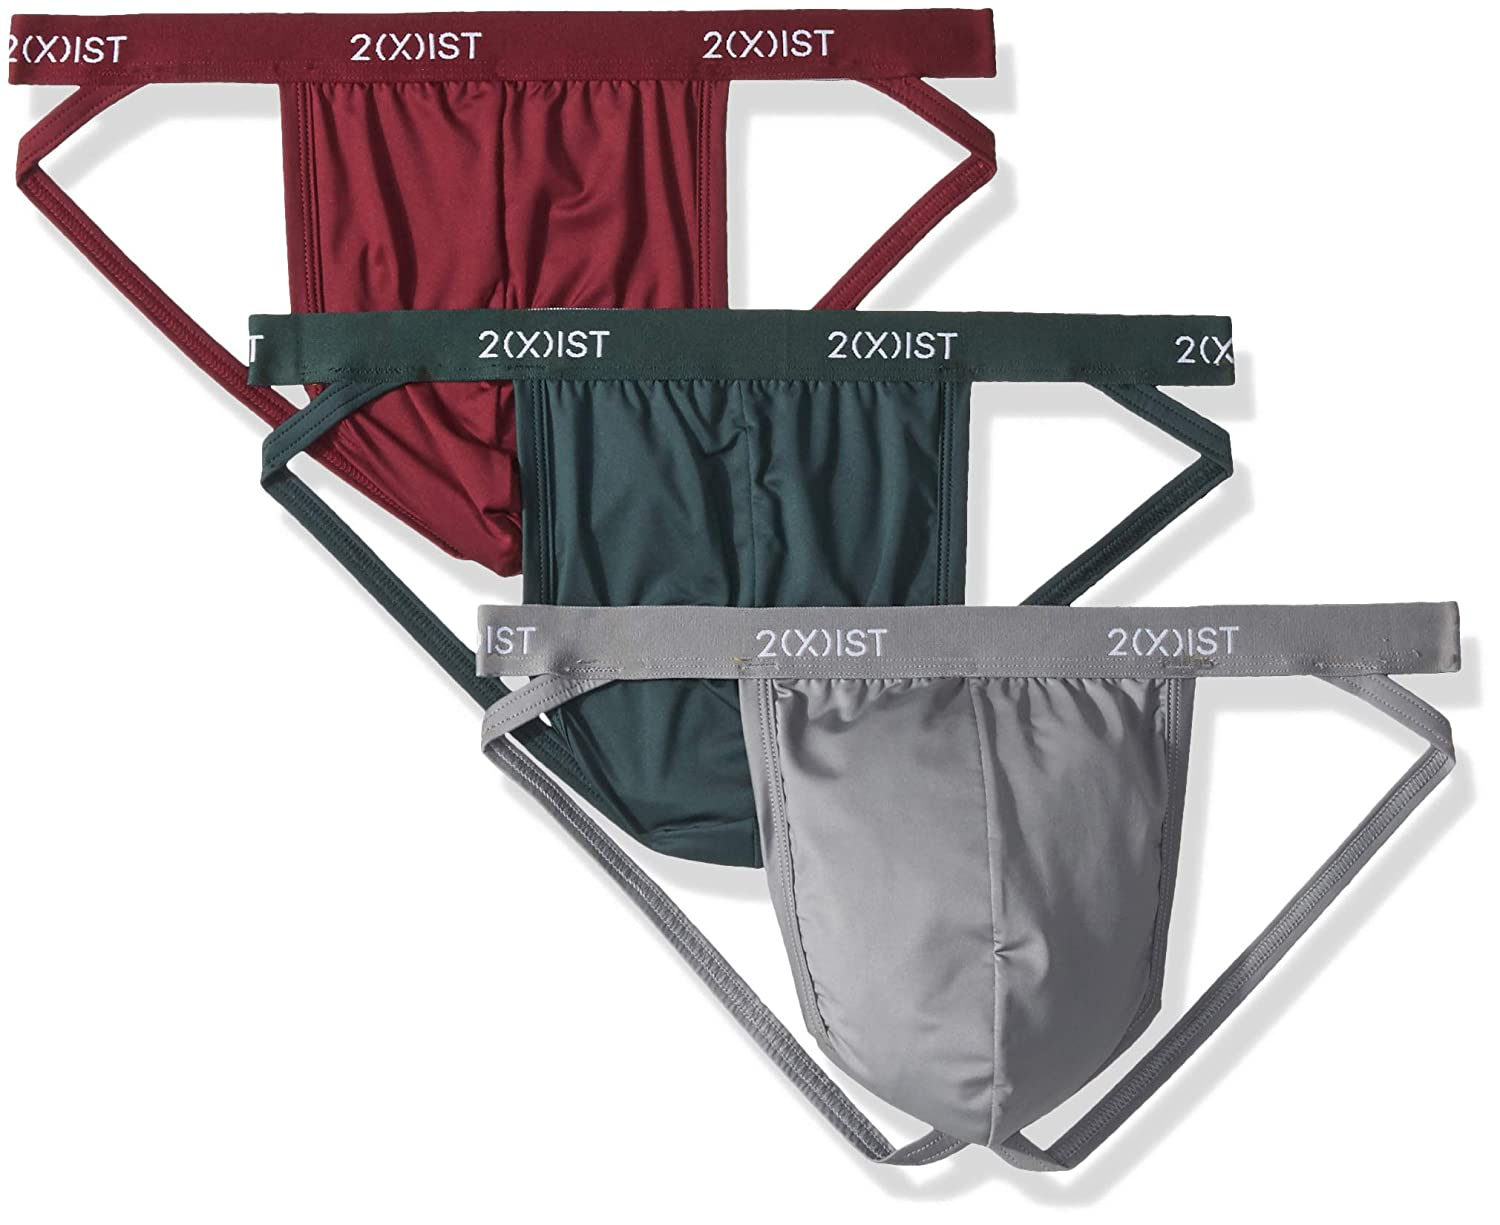 2(X) IST UNDERWEAR メンズ B07DLJ7TTL Green Gables/Sharkskin/Tawny Port Large Large|Green Gables/Sharkskin/Tawny Port